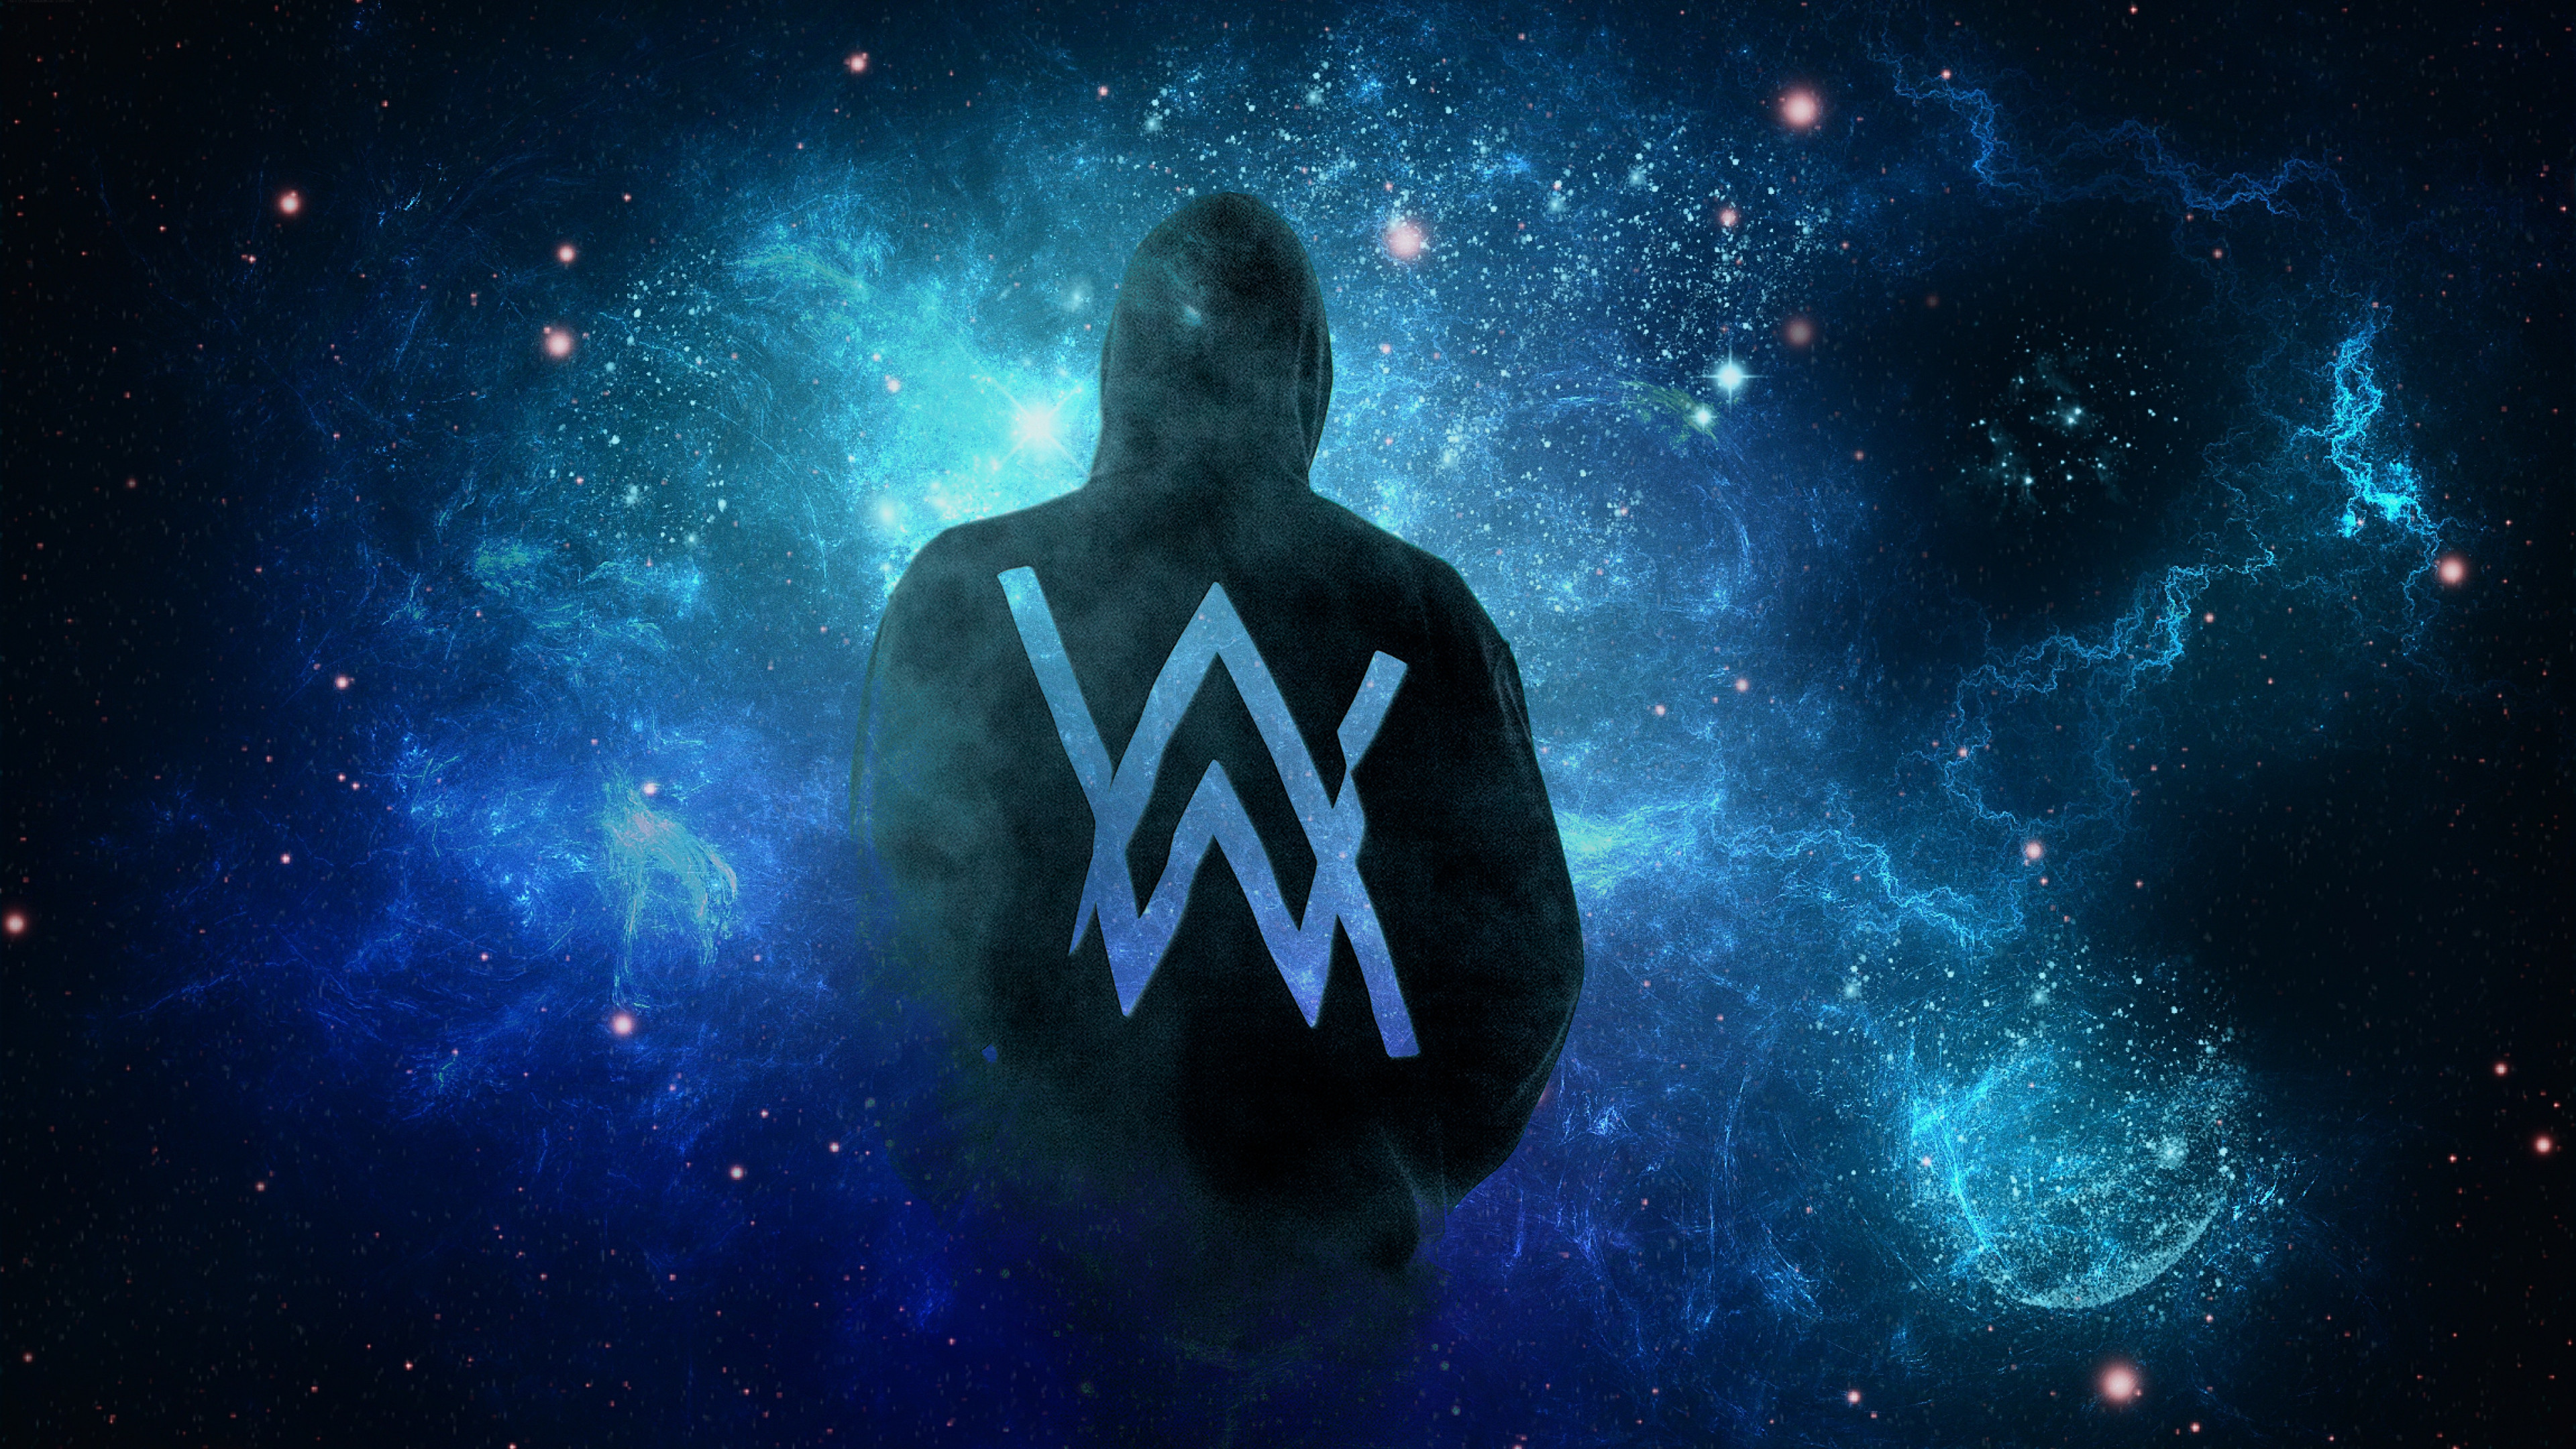 Alan Walker Logo Wallpapers 3840x2160